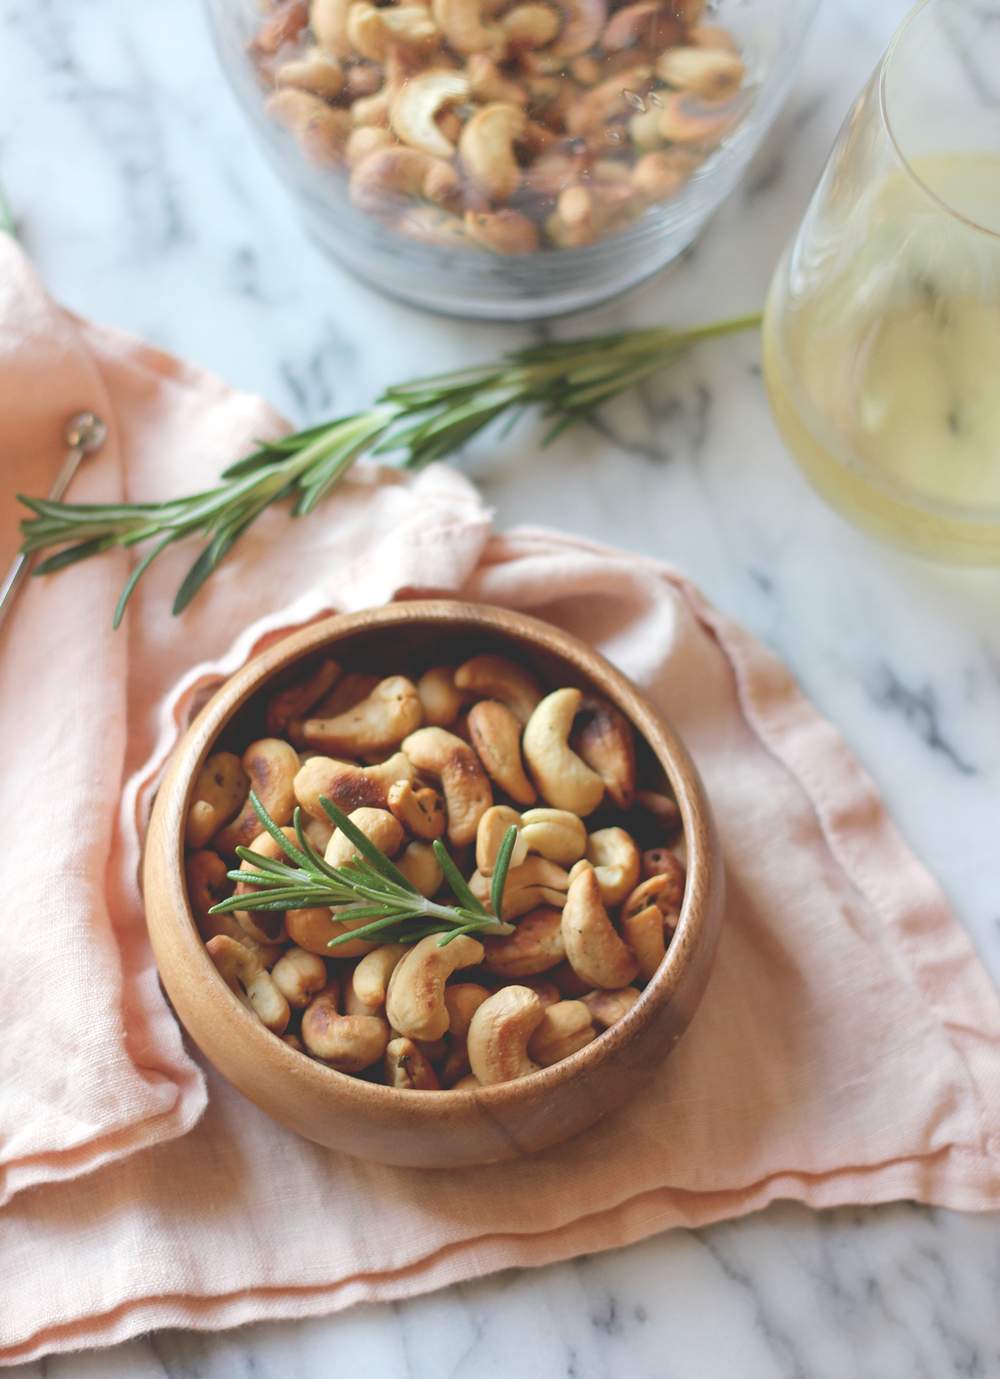 Homemade rosemary cashews, simple recipe to try this weekend! | A Fabulous fete